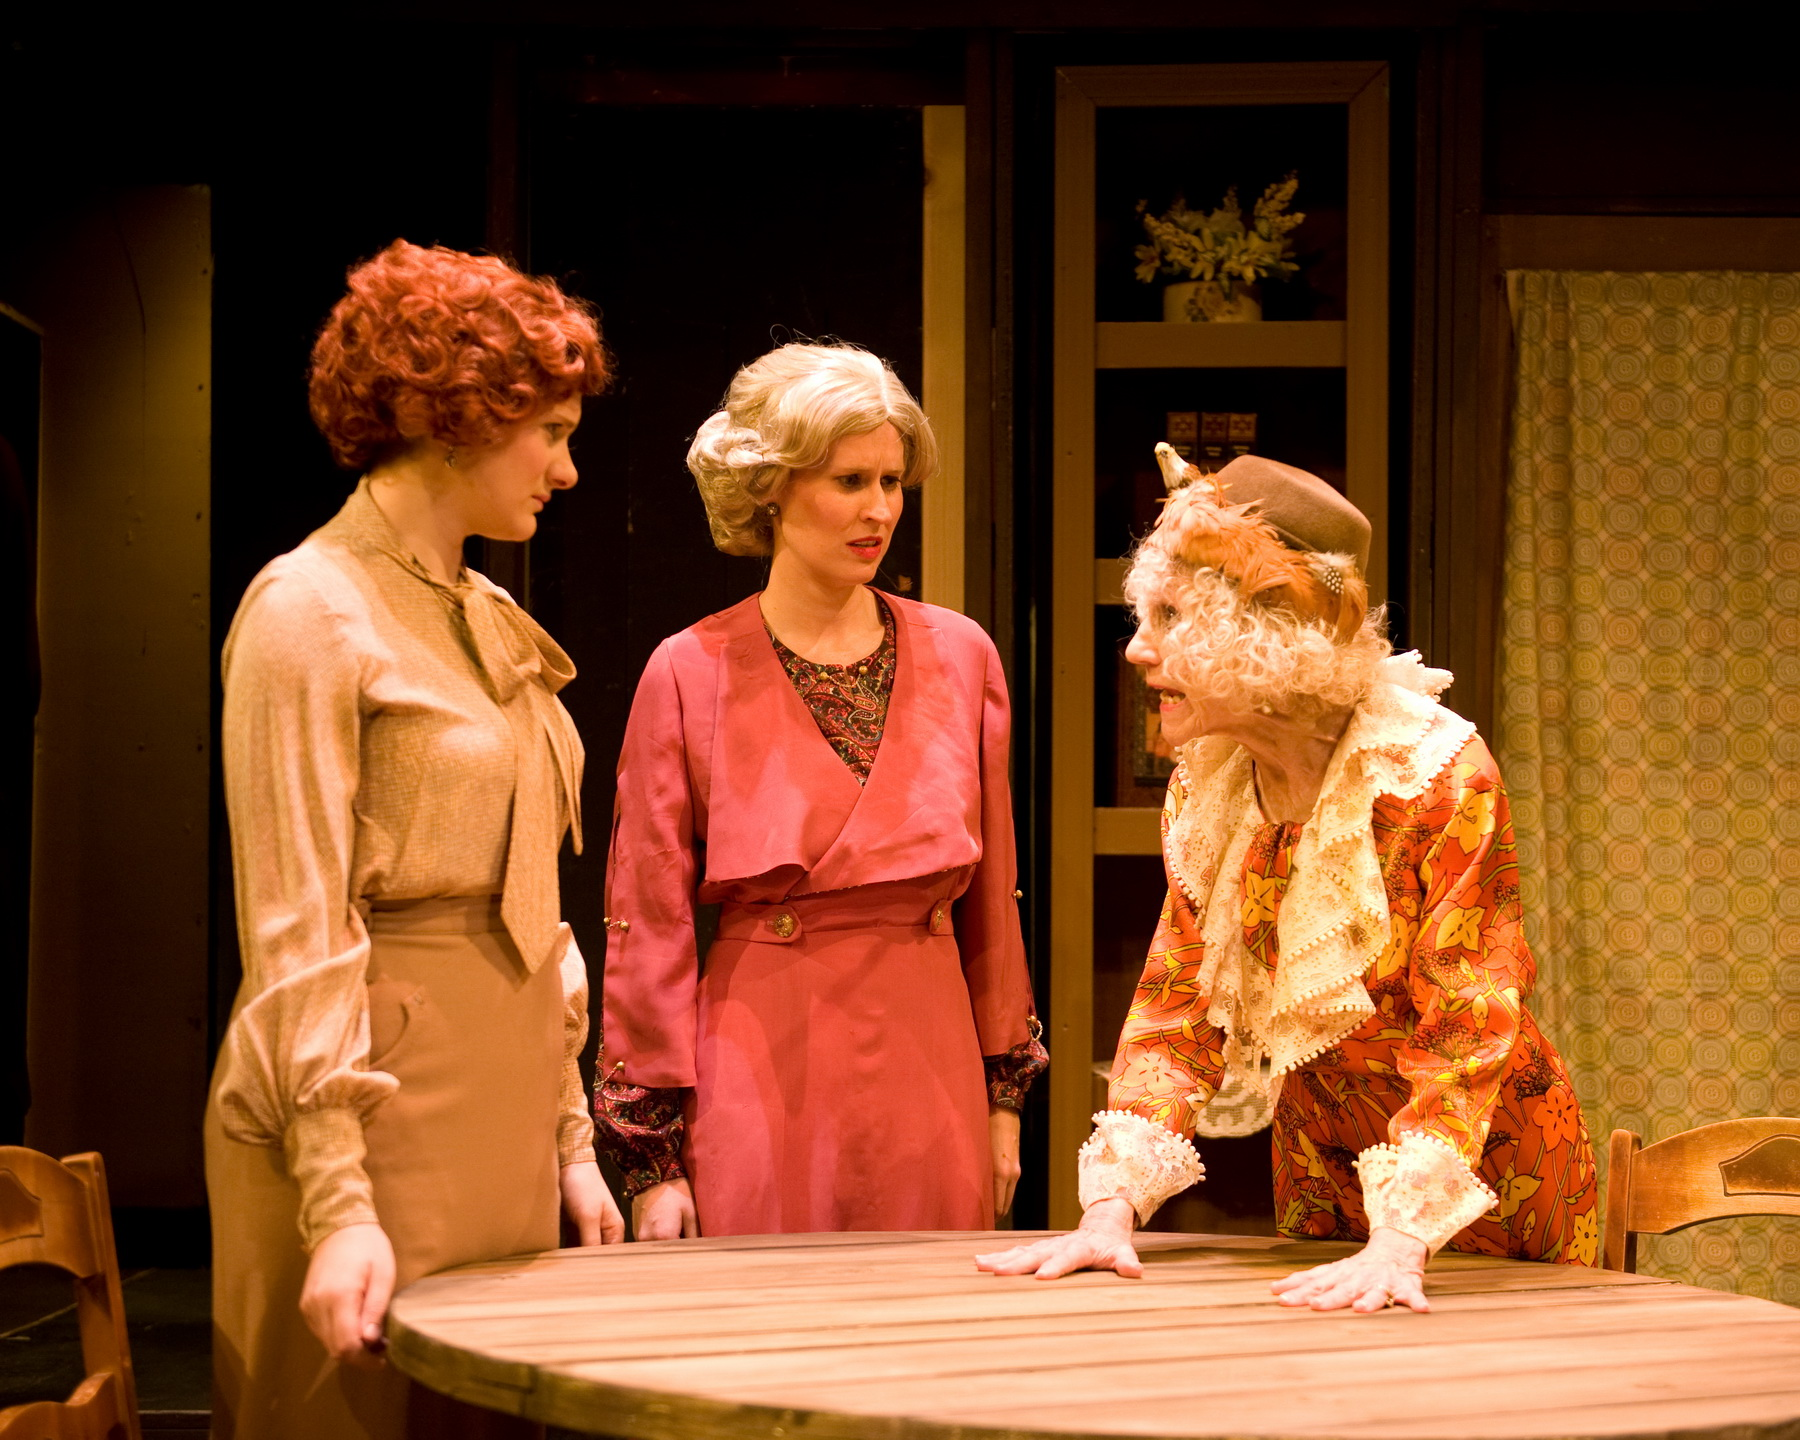 Monica Zach as Mavis Wilson, Jill Kenderes as Cecily Harrington and Marcia Mandell as Louise Garrard (Aunt Lou Lou)